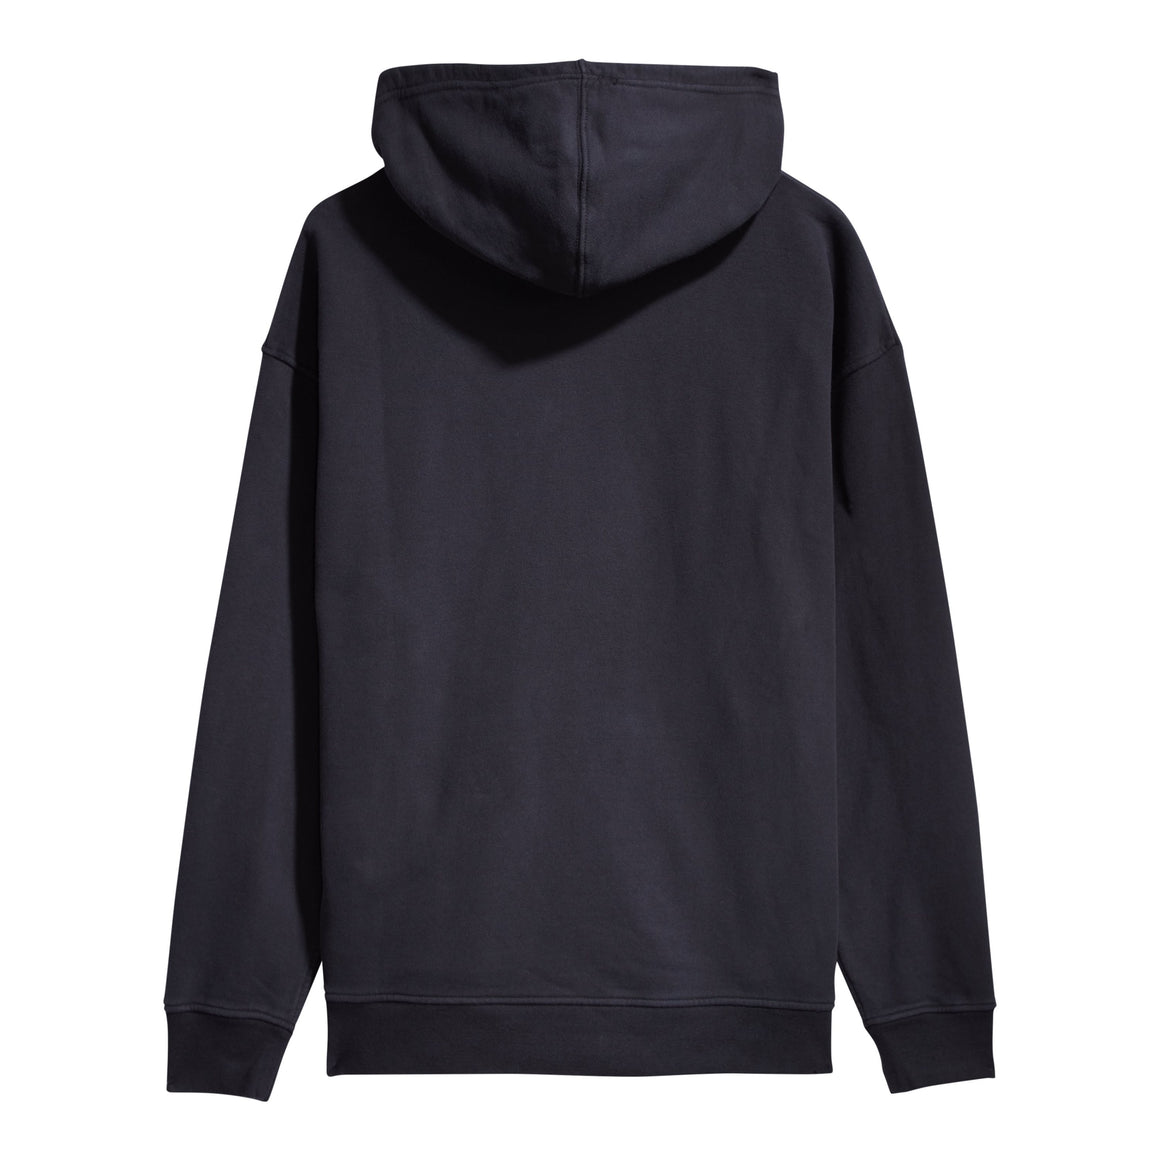 T2 Relaxed Graphic Hoodie for Men in Serif Law Gap Po Jet Black